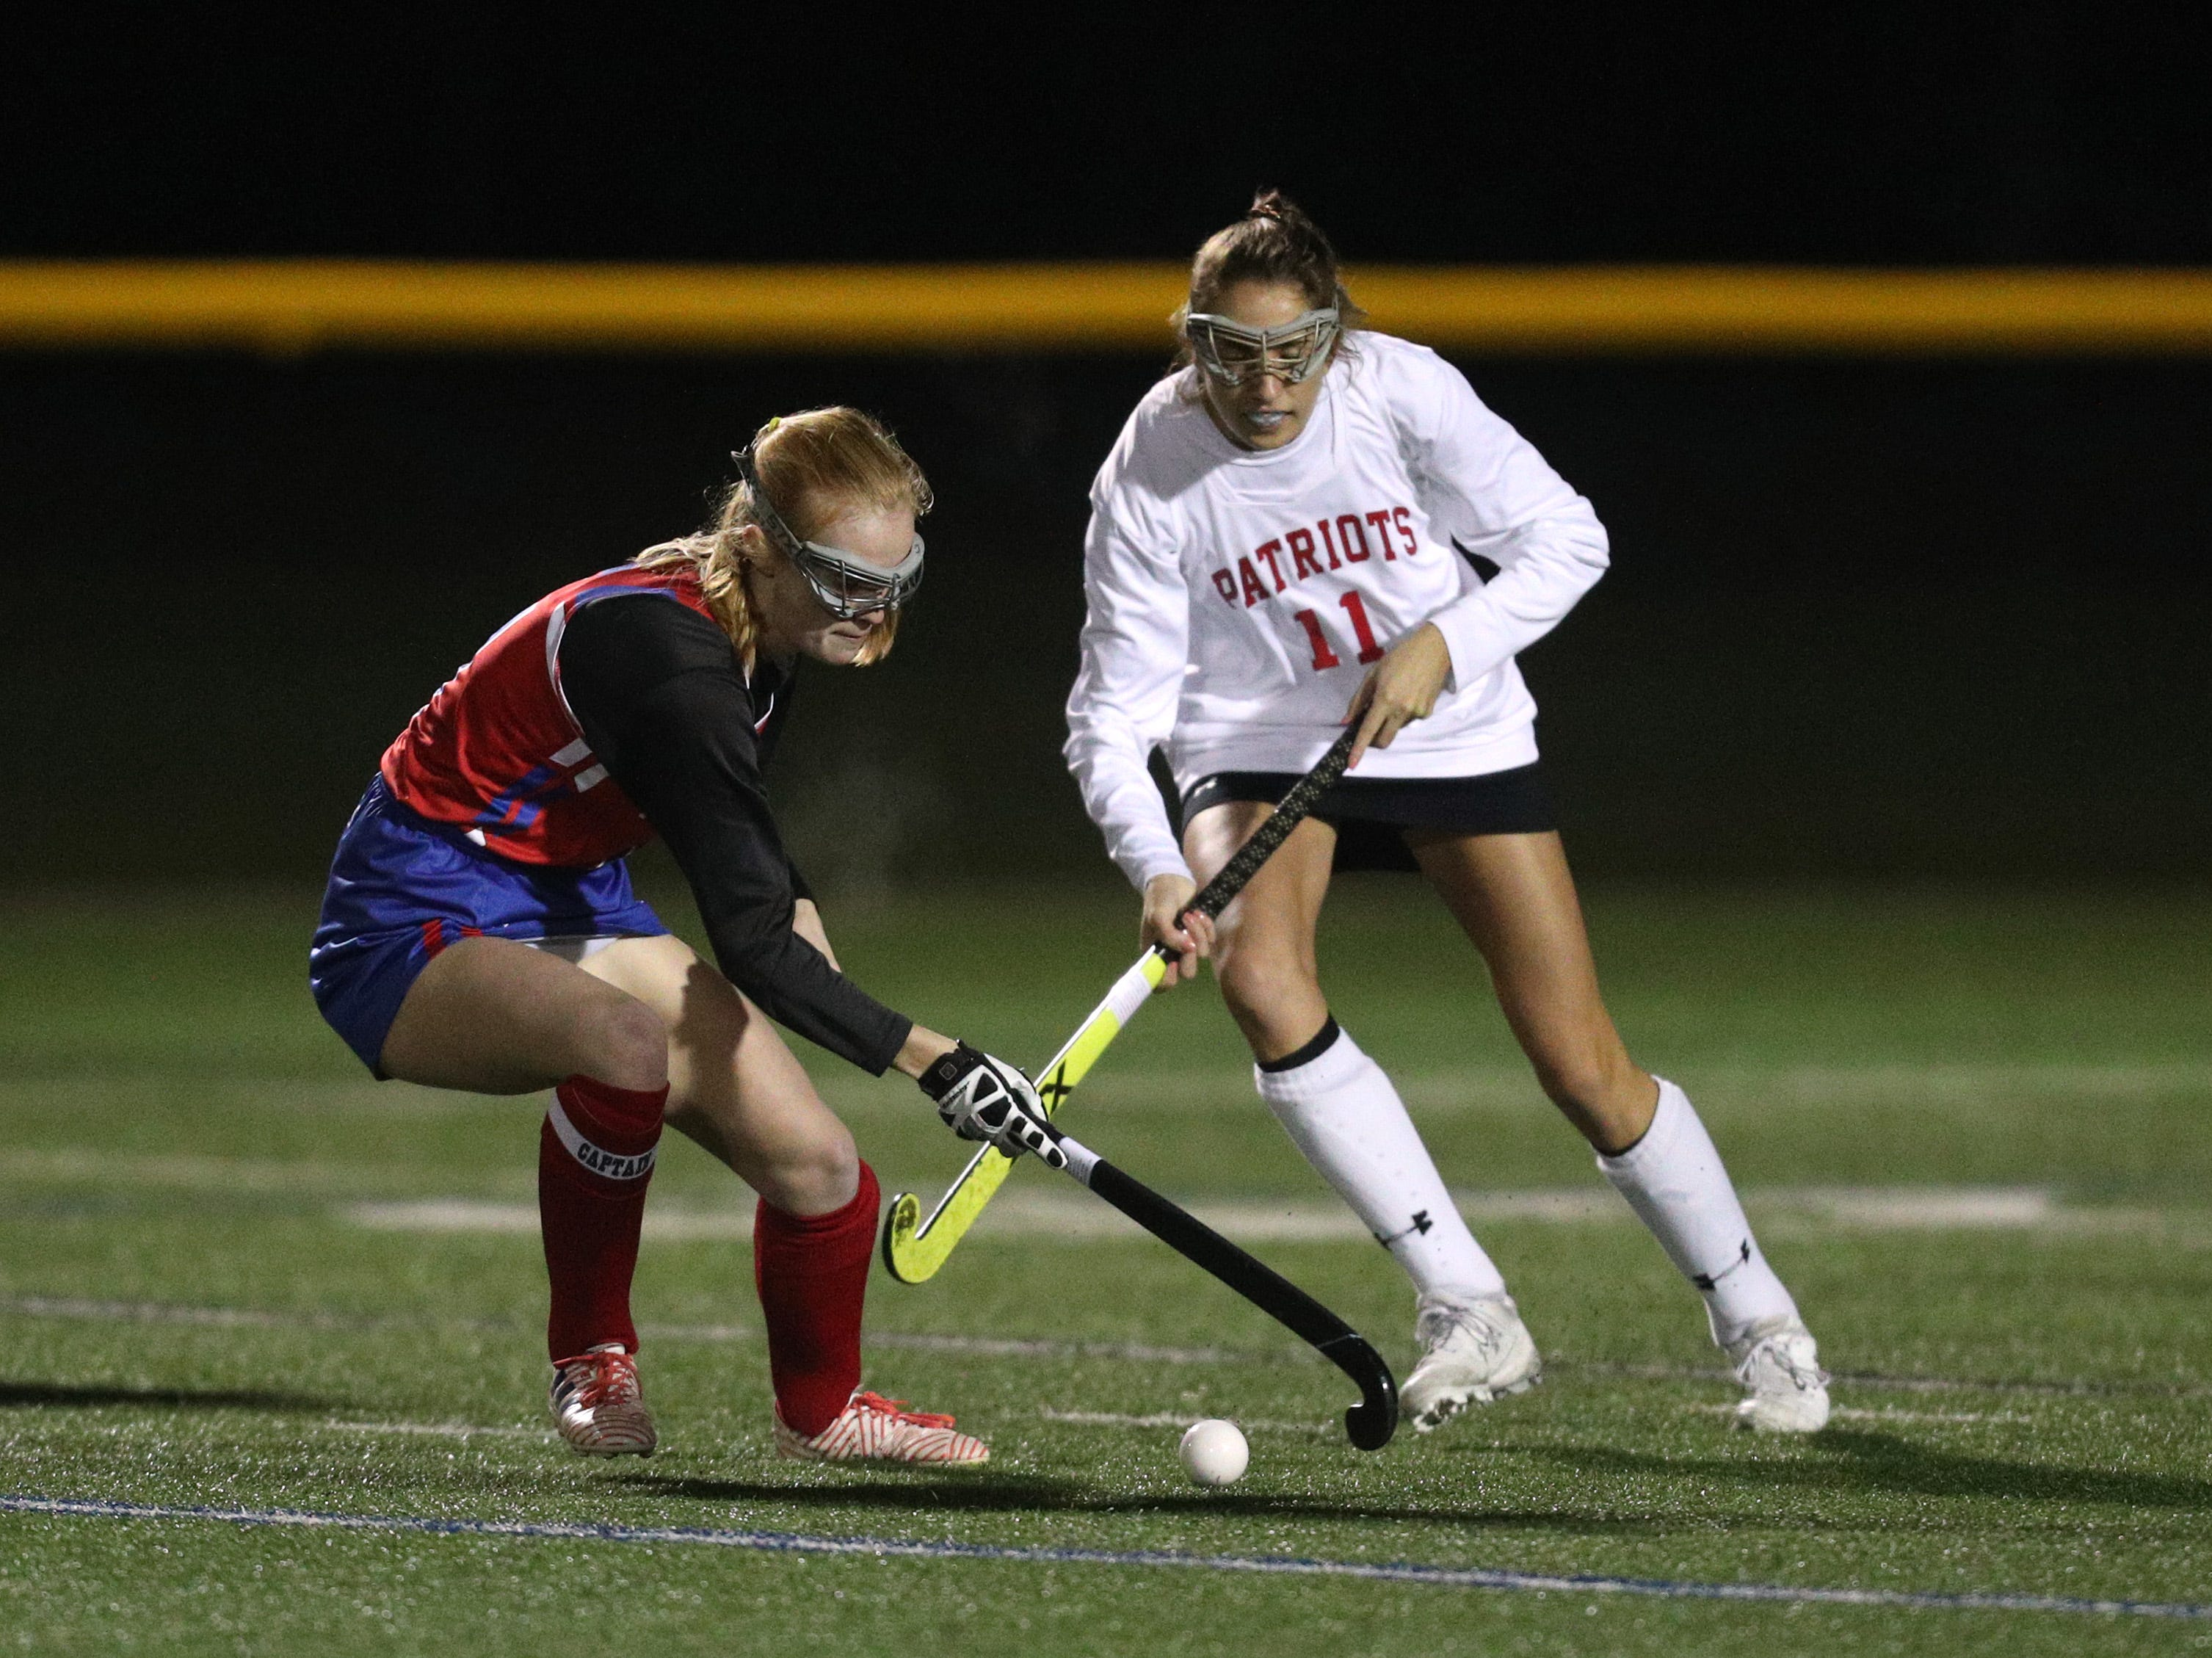 Fairport's  Maggie Phipps carries the ball out of pressure by  Penfield's Kate Mosca.